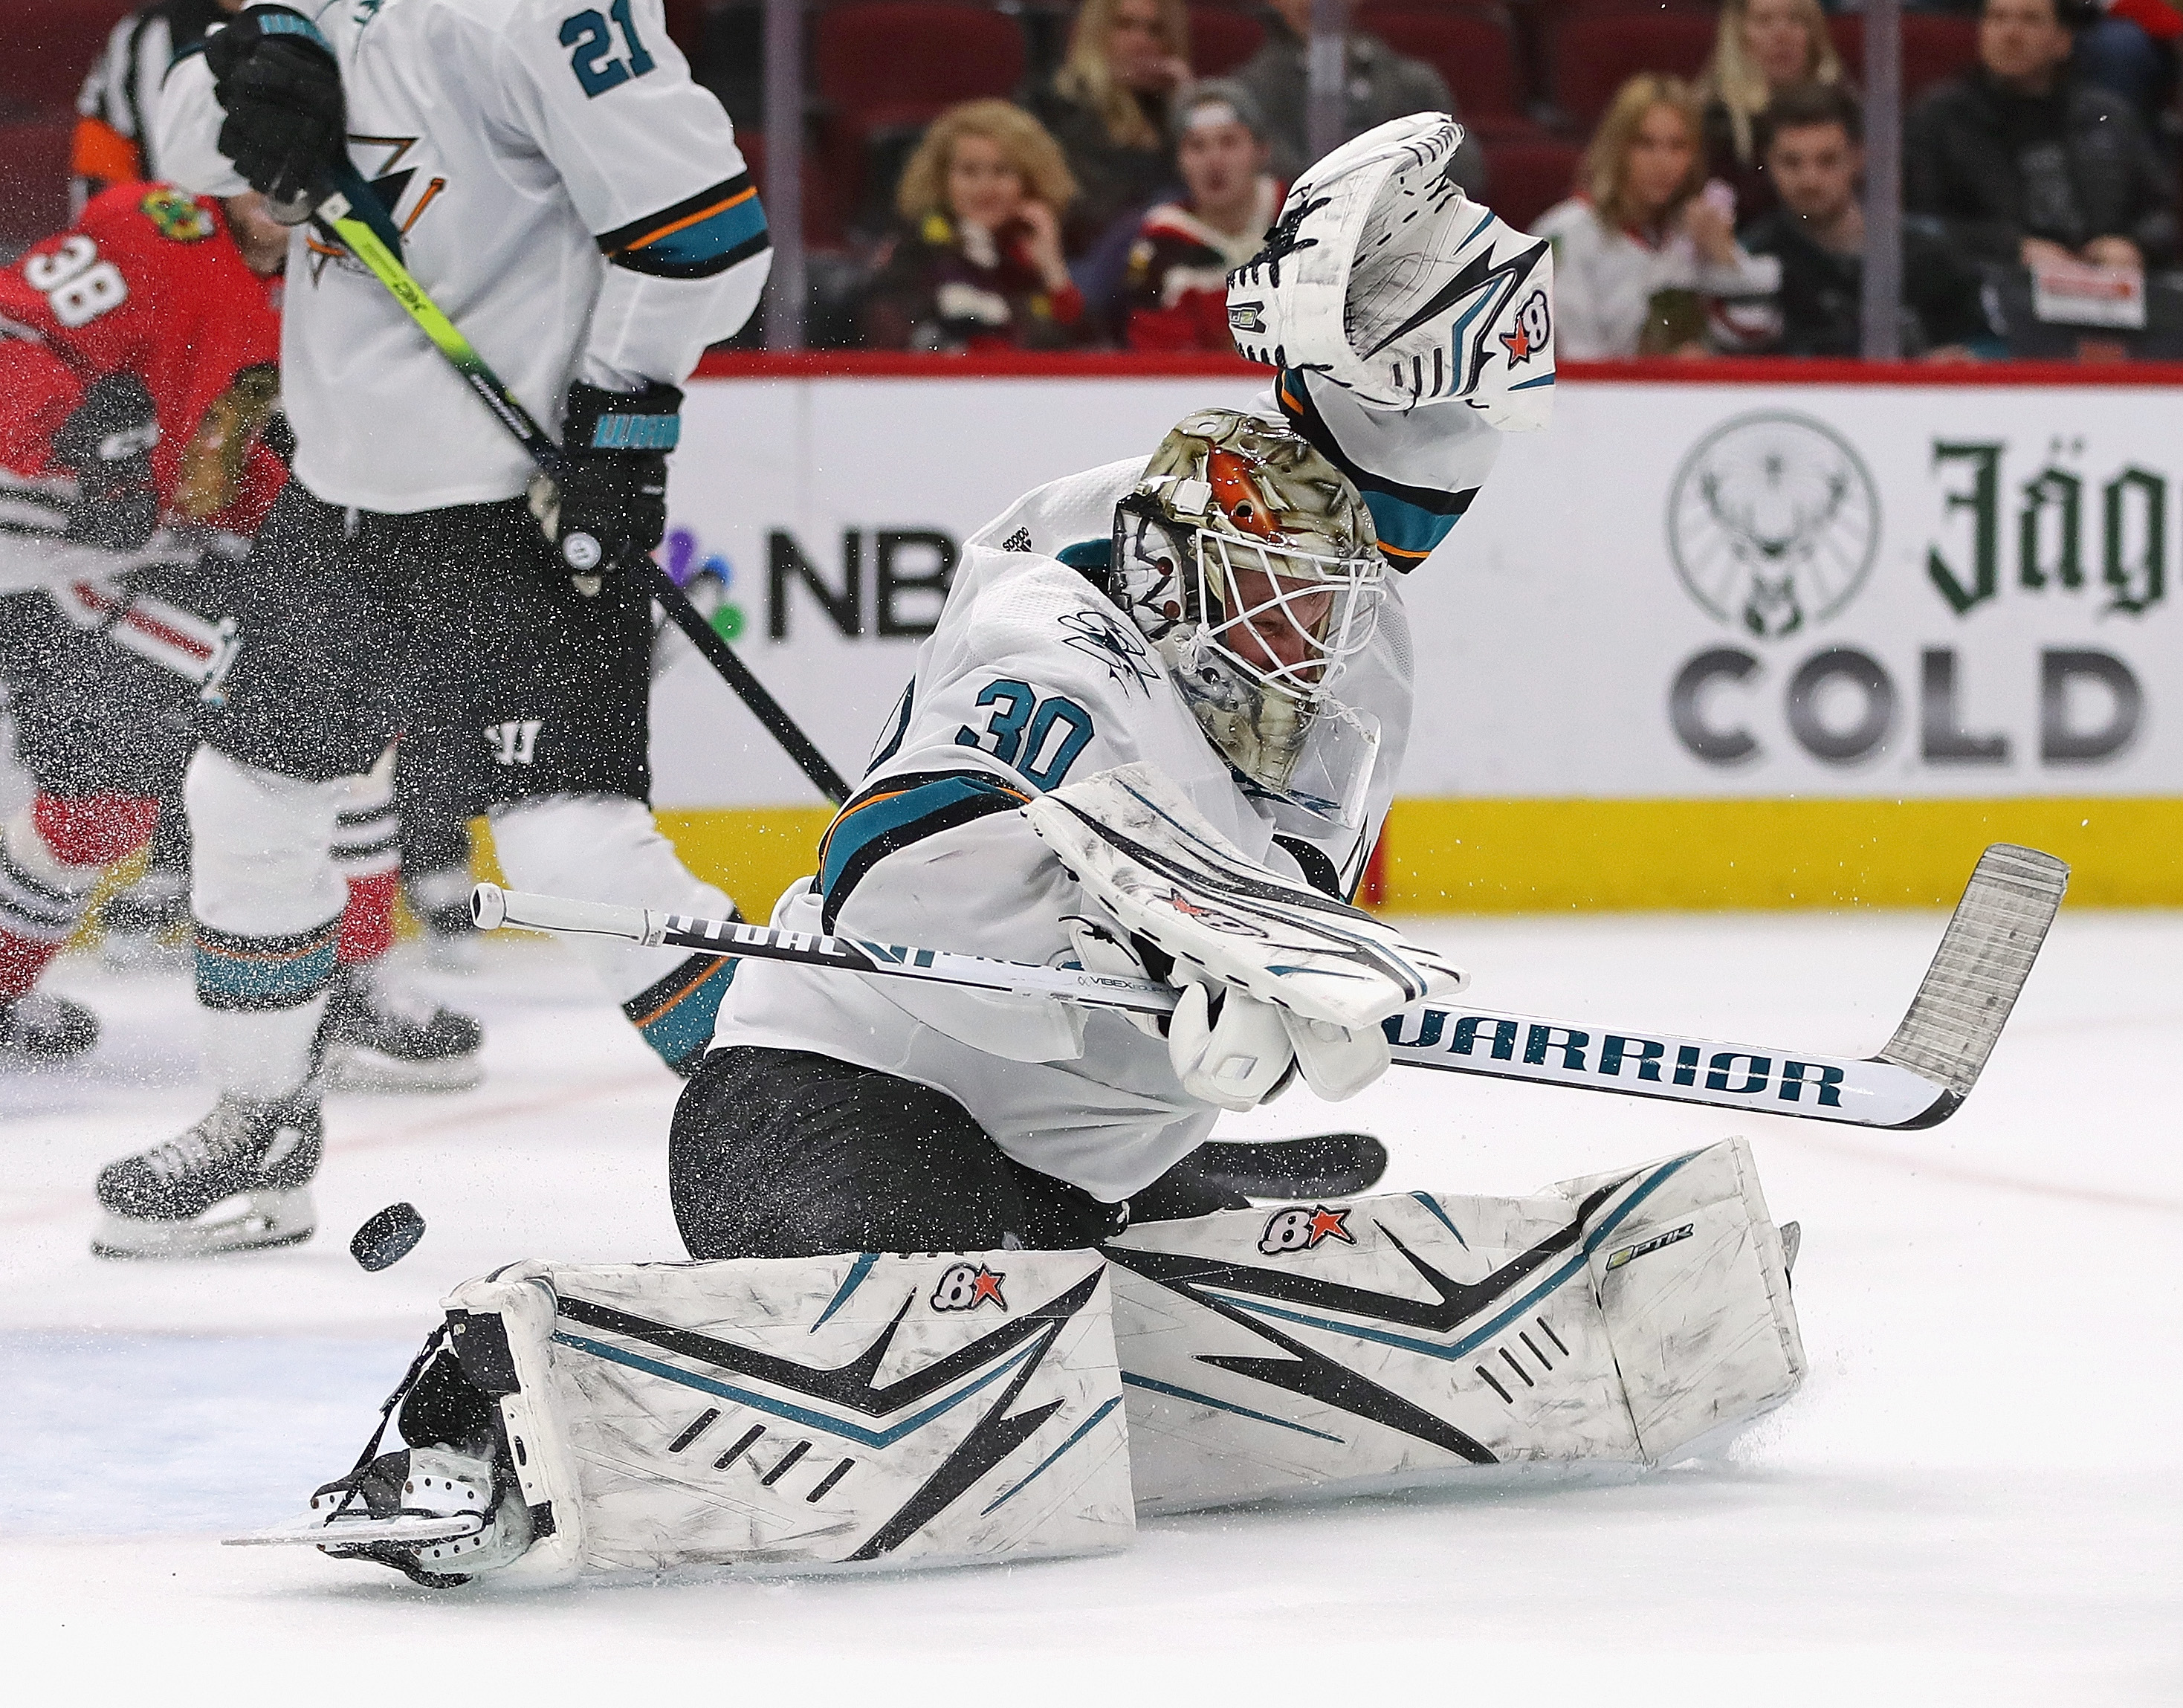 CHICAGO, ILLINOIS - MARCH 11: The puck slips past Aaron Dell #30 of the San Jose Sharks on a goal by the Chicago Blackhawks at the United Center on March 11, 2020 in Chicago, Illinois. The Blackhawks defeated the Sharks 6-2.